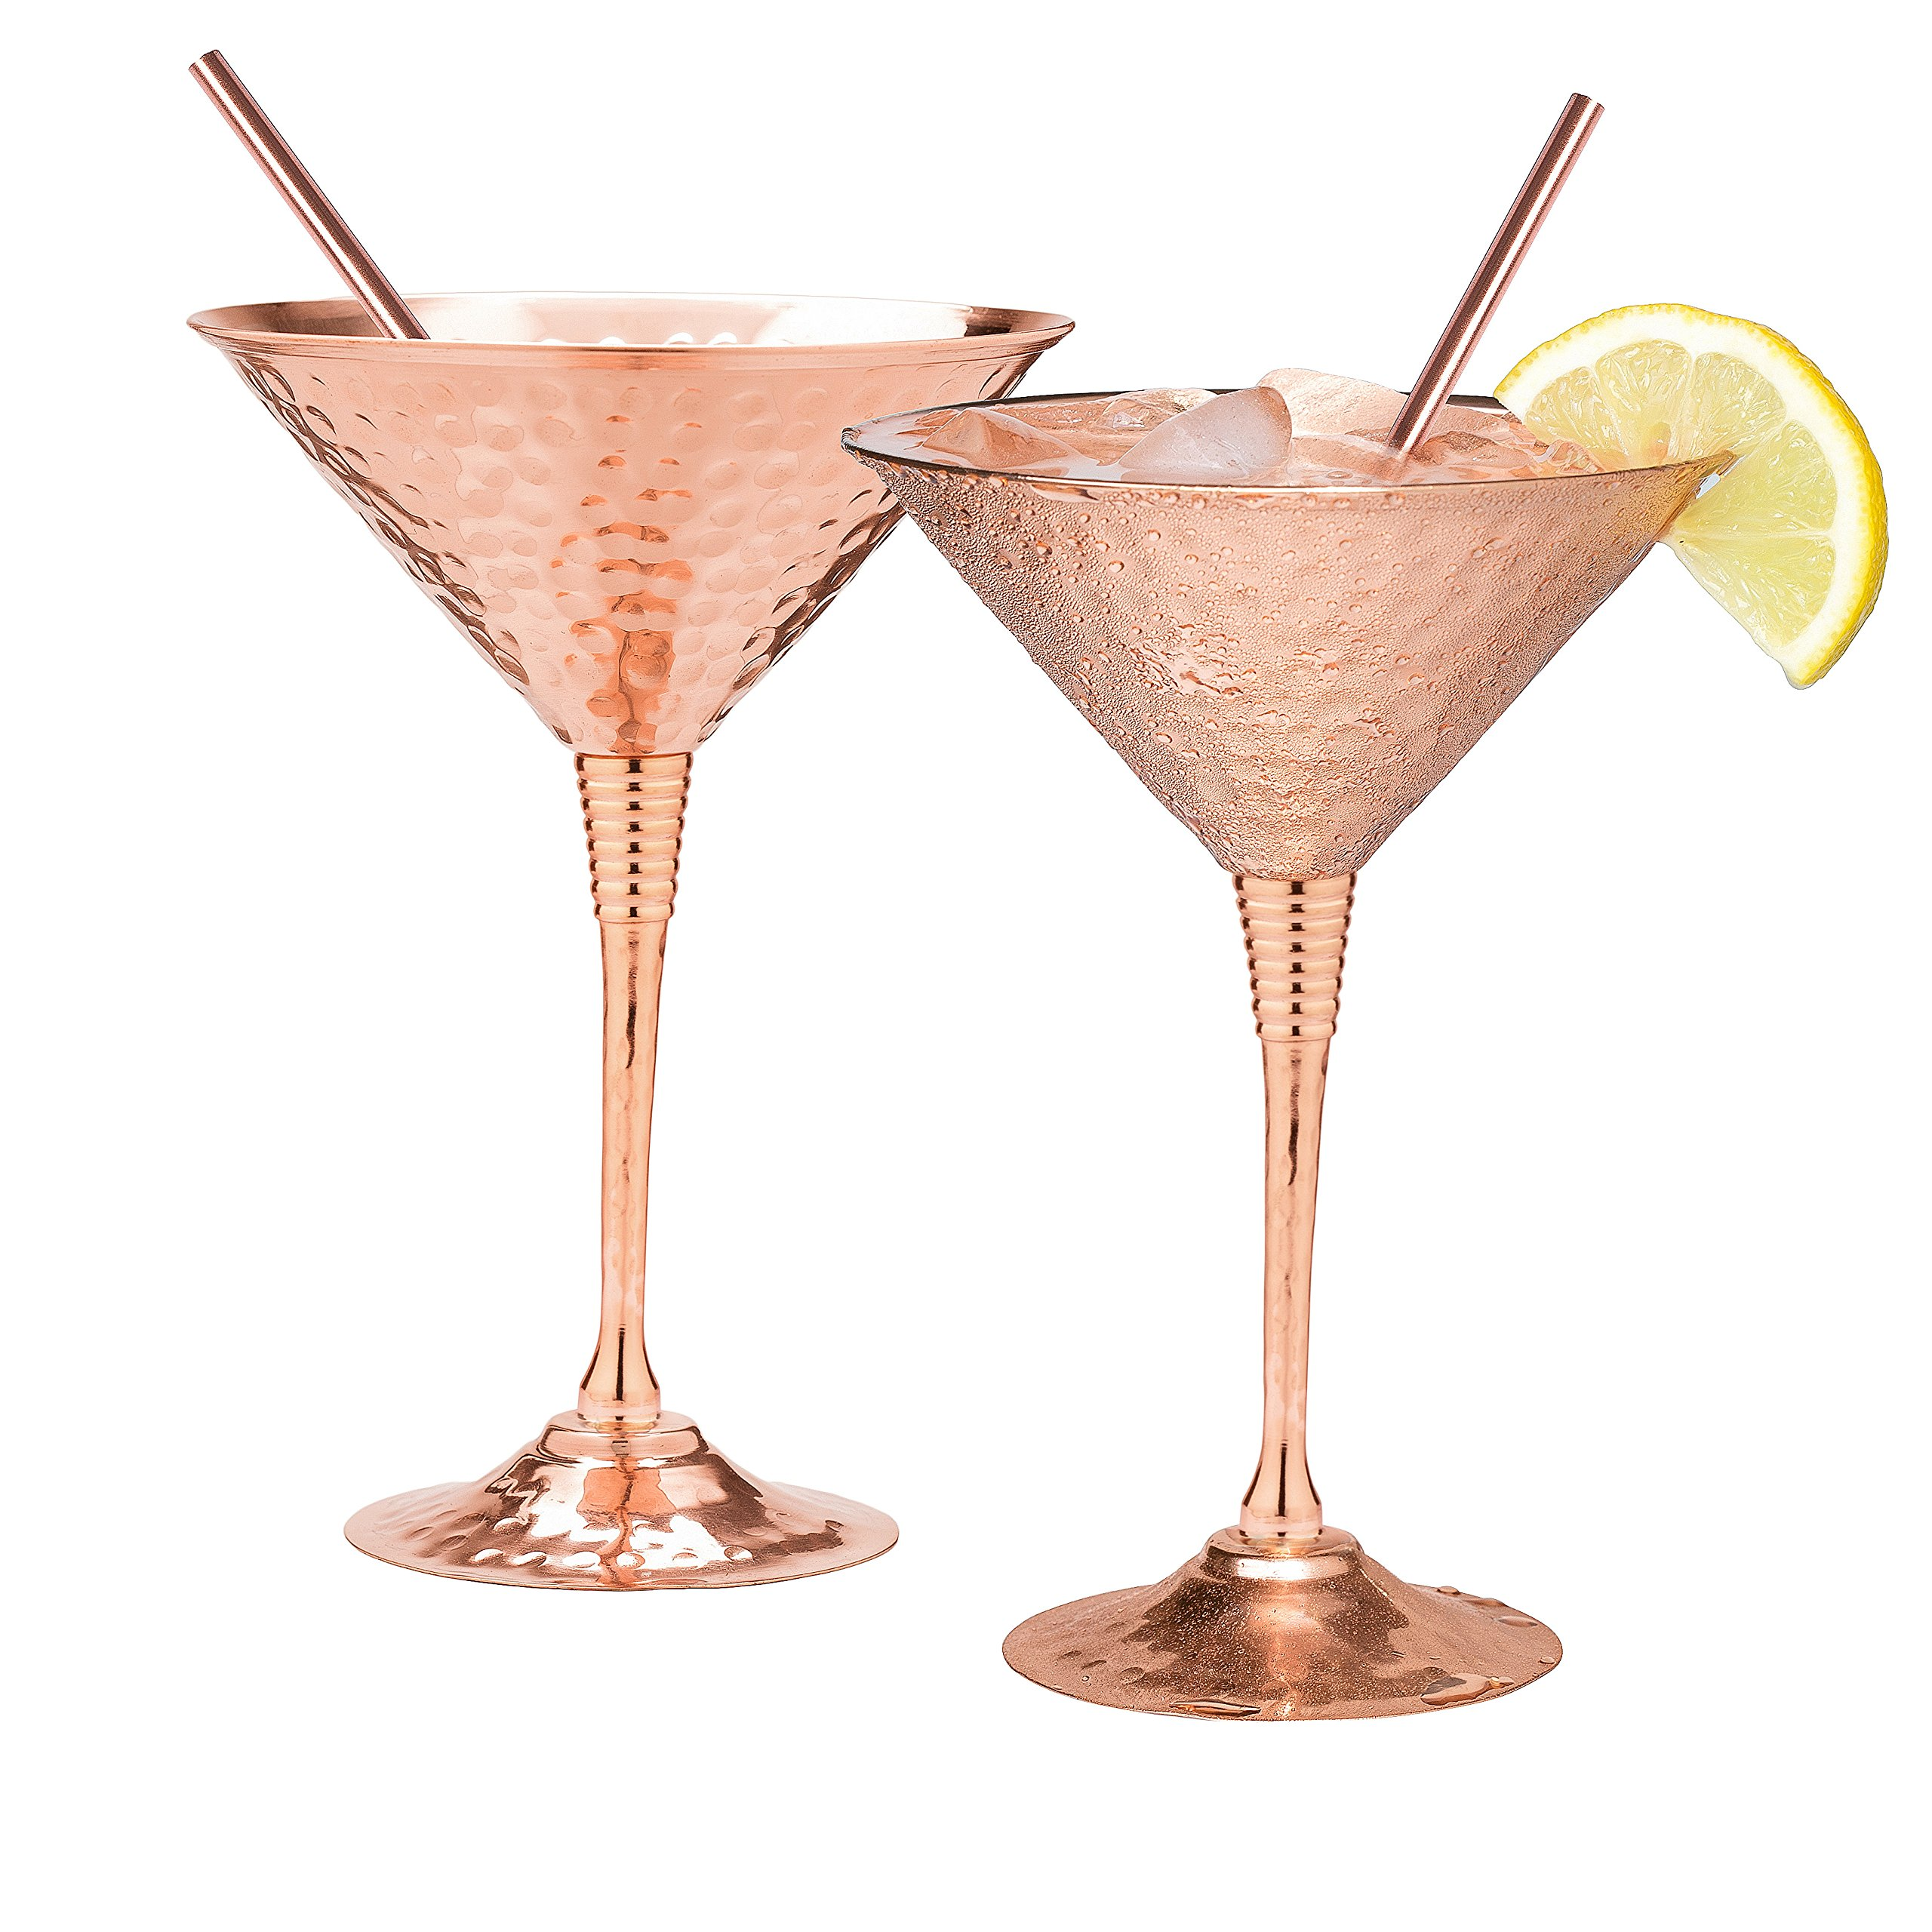 Copper martini glasses set of 2 by Mosscoff – 9.5oz Hand hammered solid copper goblets with exquisite reinforcement ring. – Bonus pure copper straws – A gift set no one can resist.